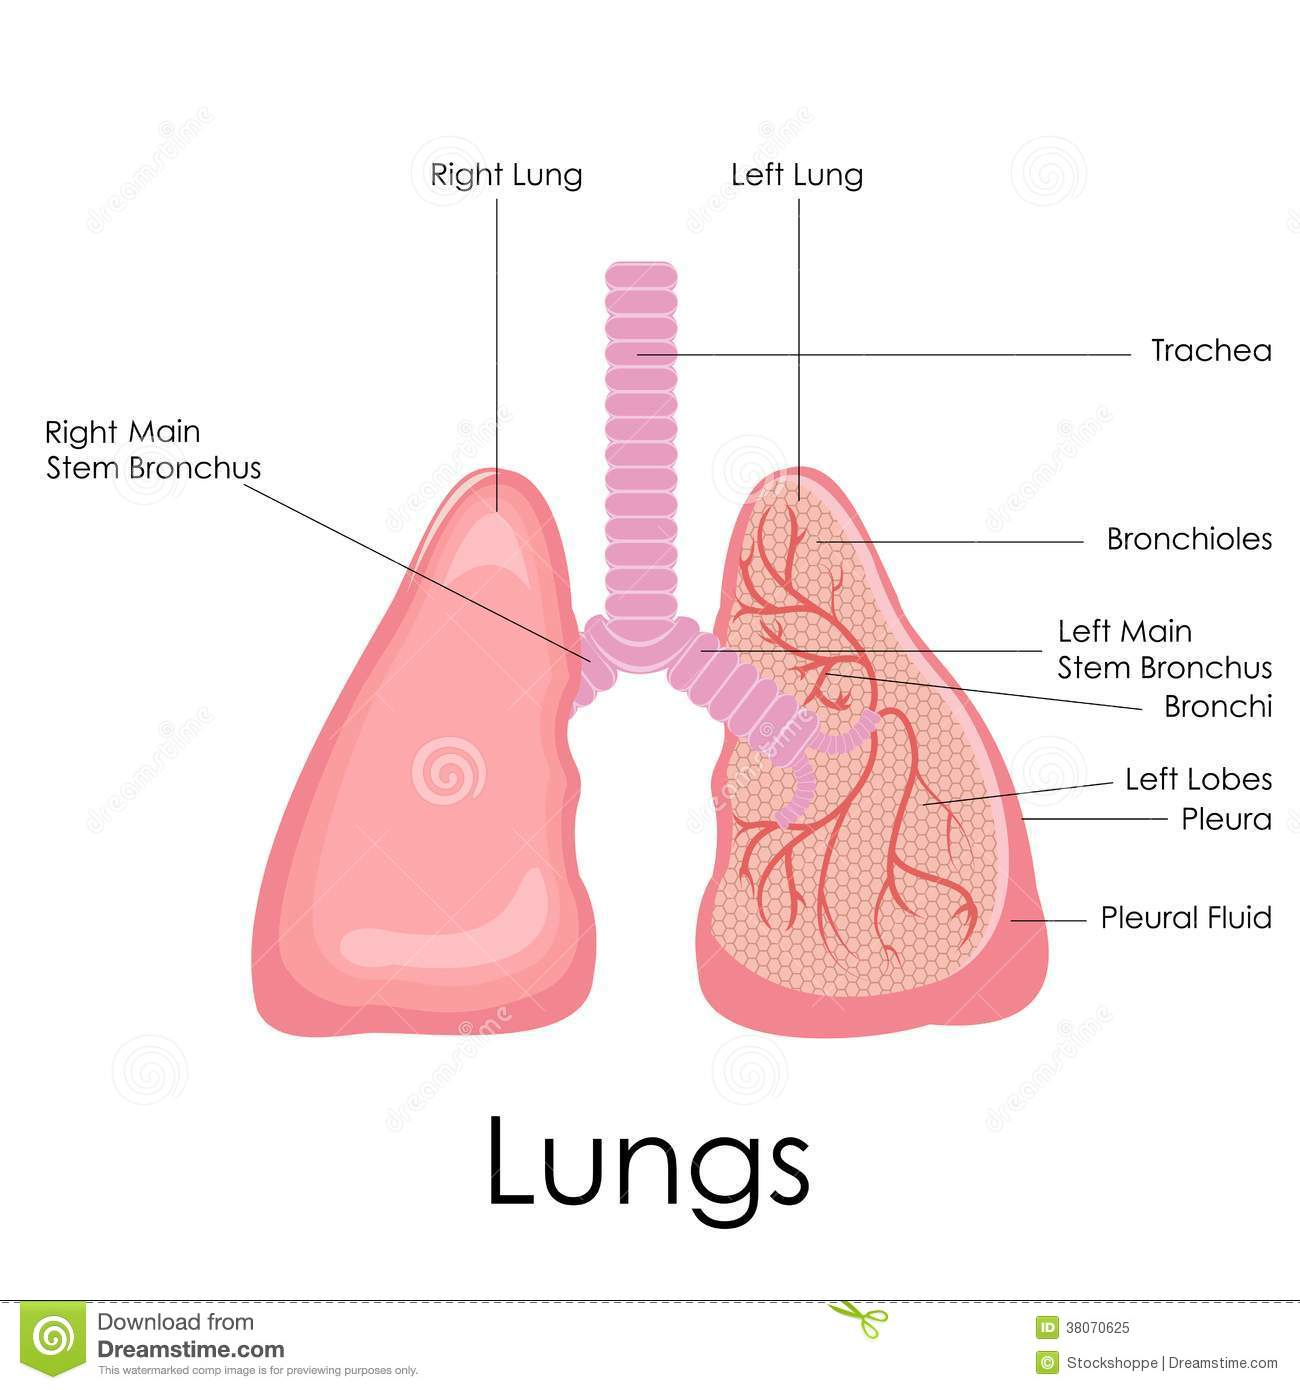 Human Lungs Anatomy Royalty Free Stock Photo - Image: 38070625